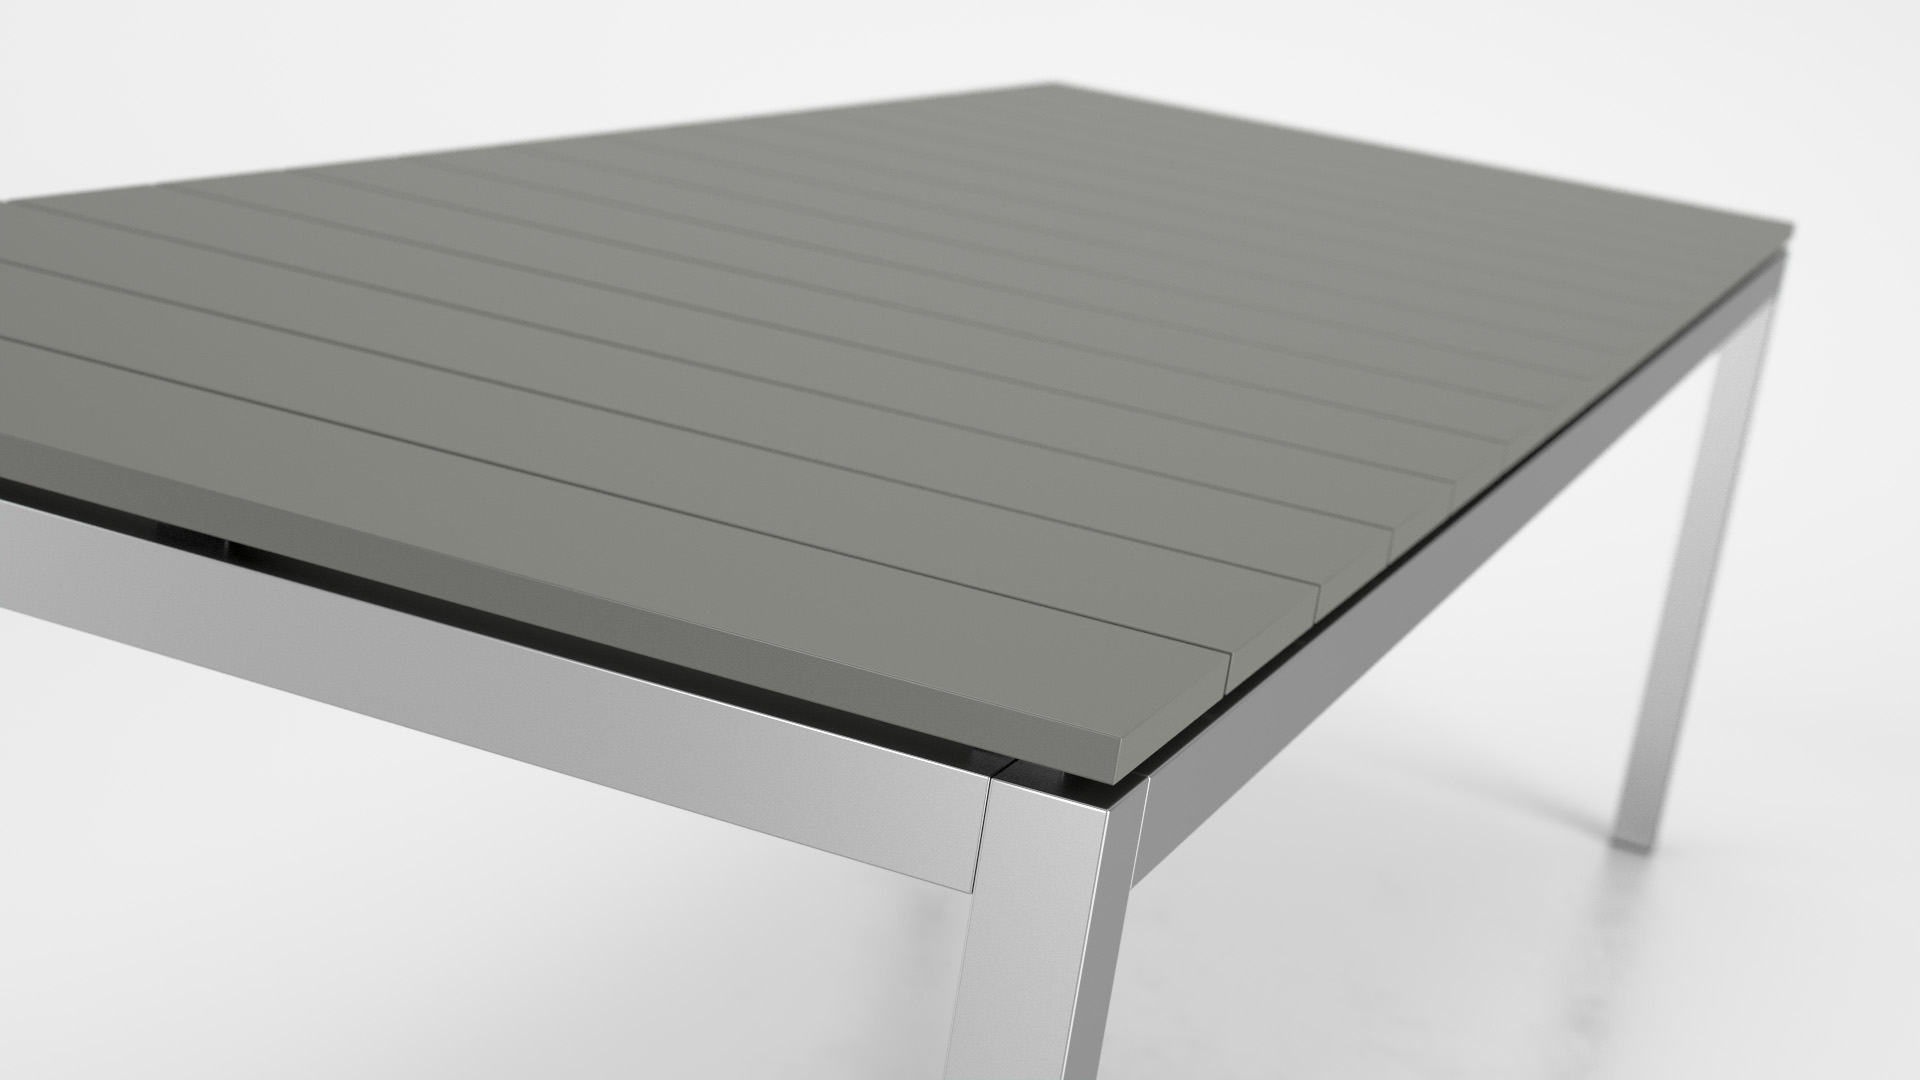 Tribu_NatalTechno_Table_WhiteSet_01_0003